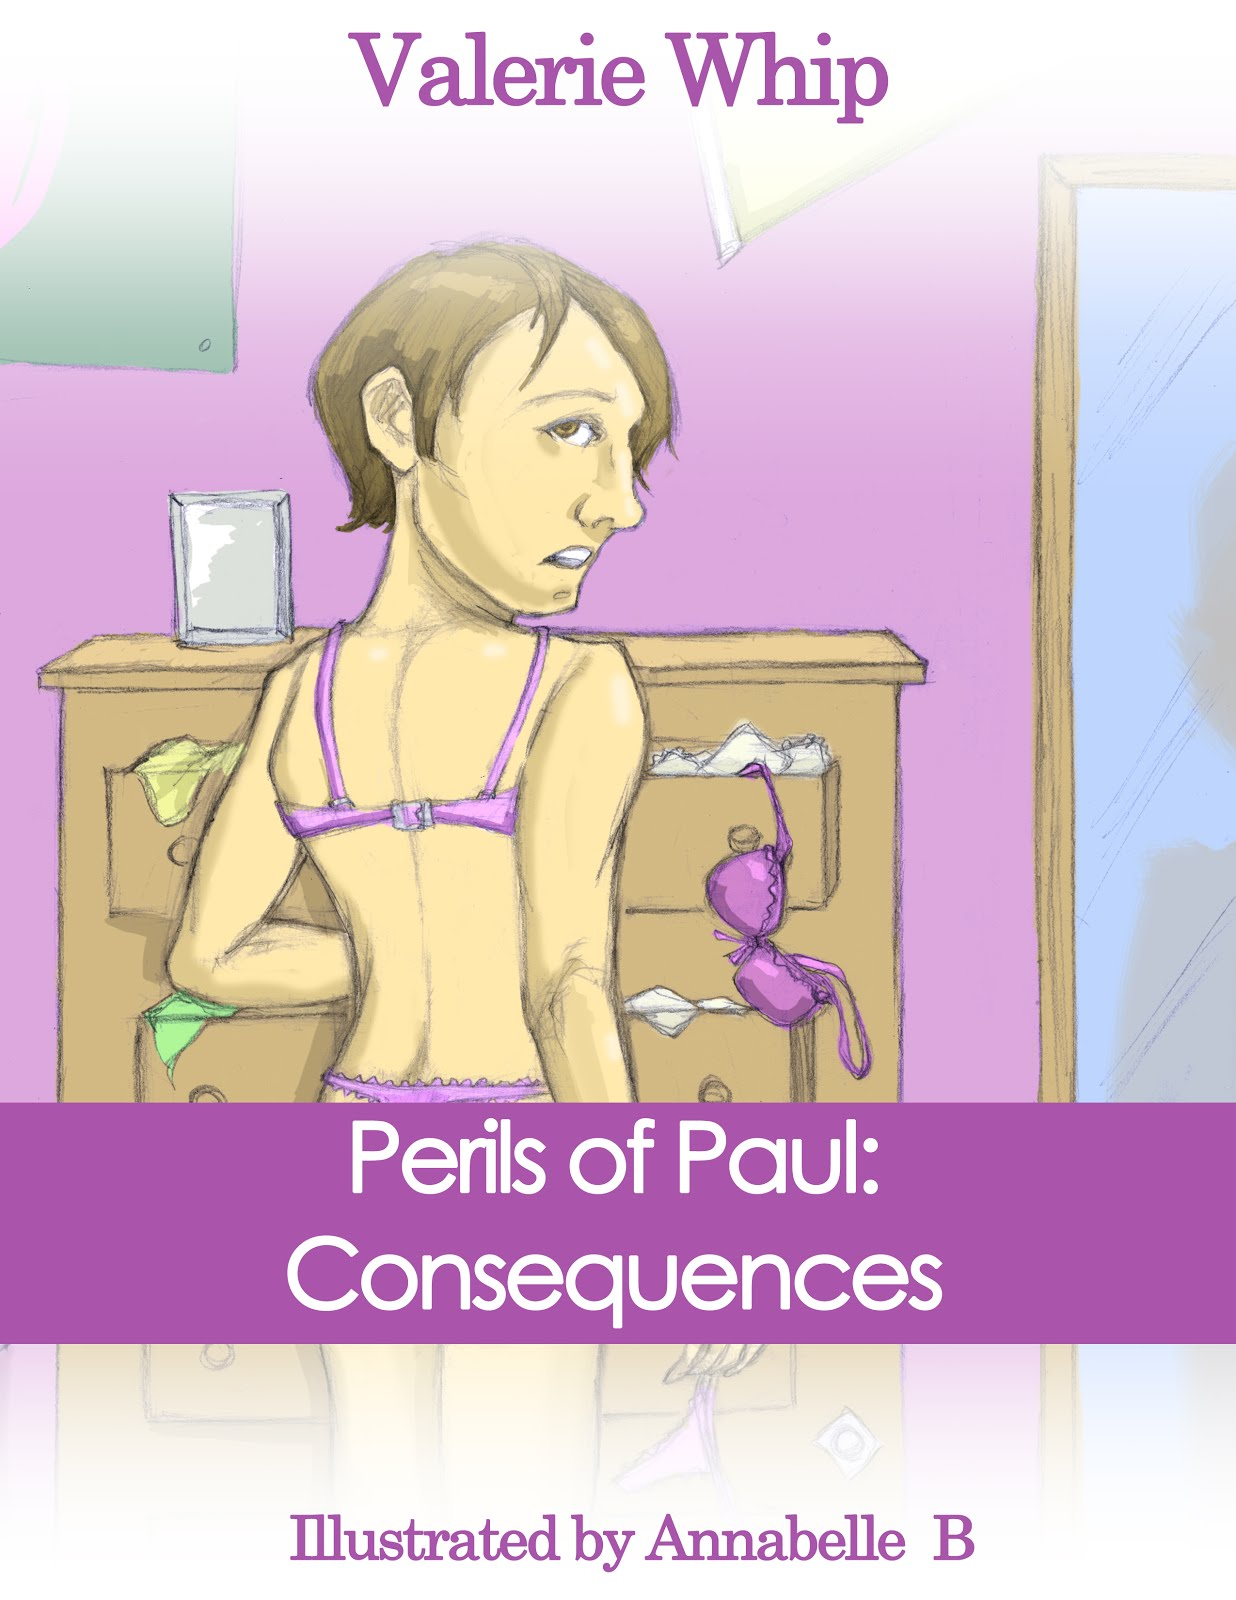 Perils of Paul: Consequences